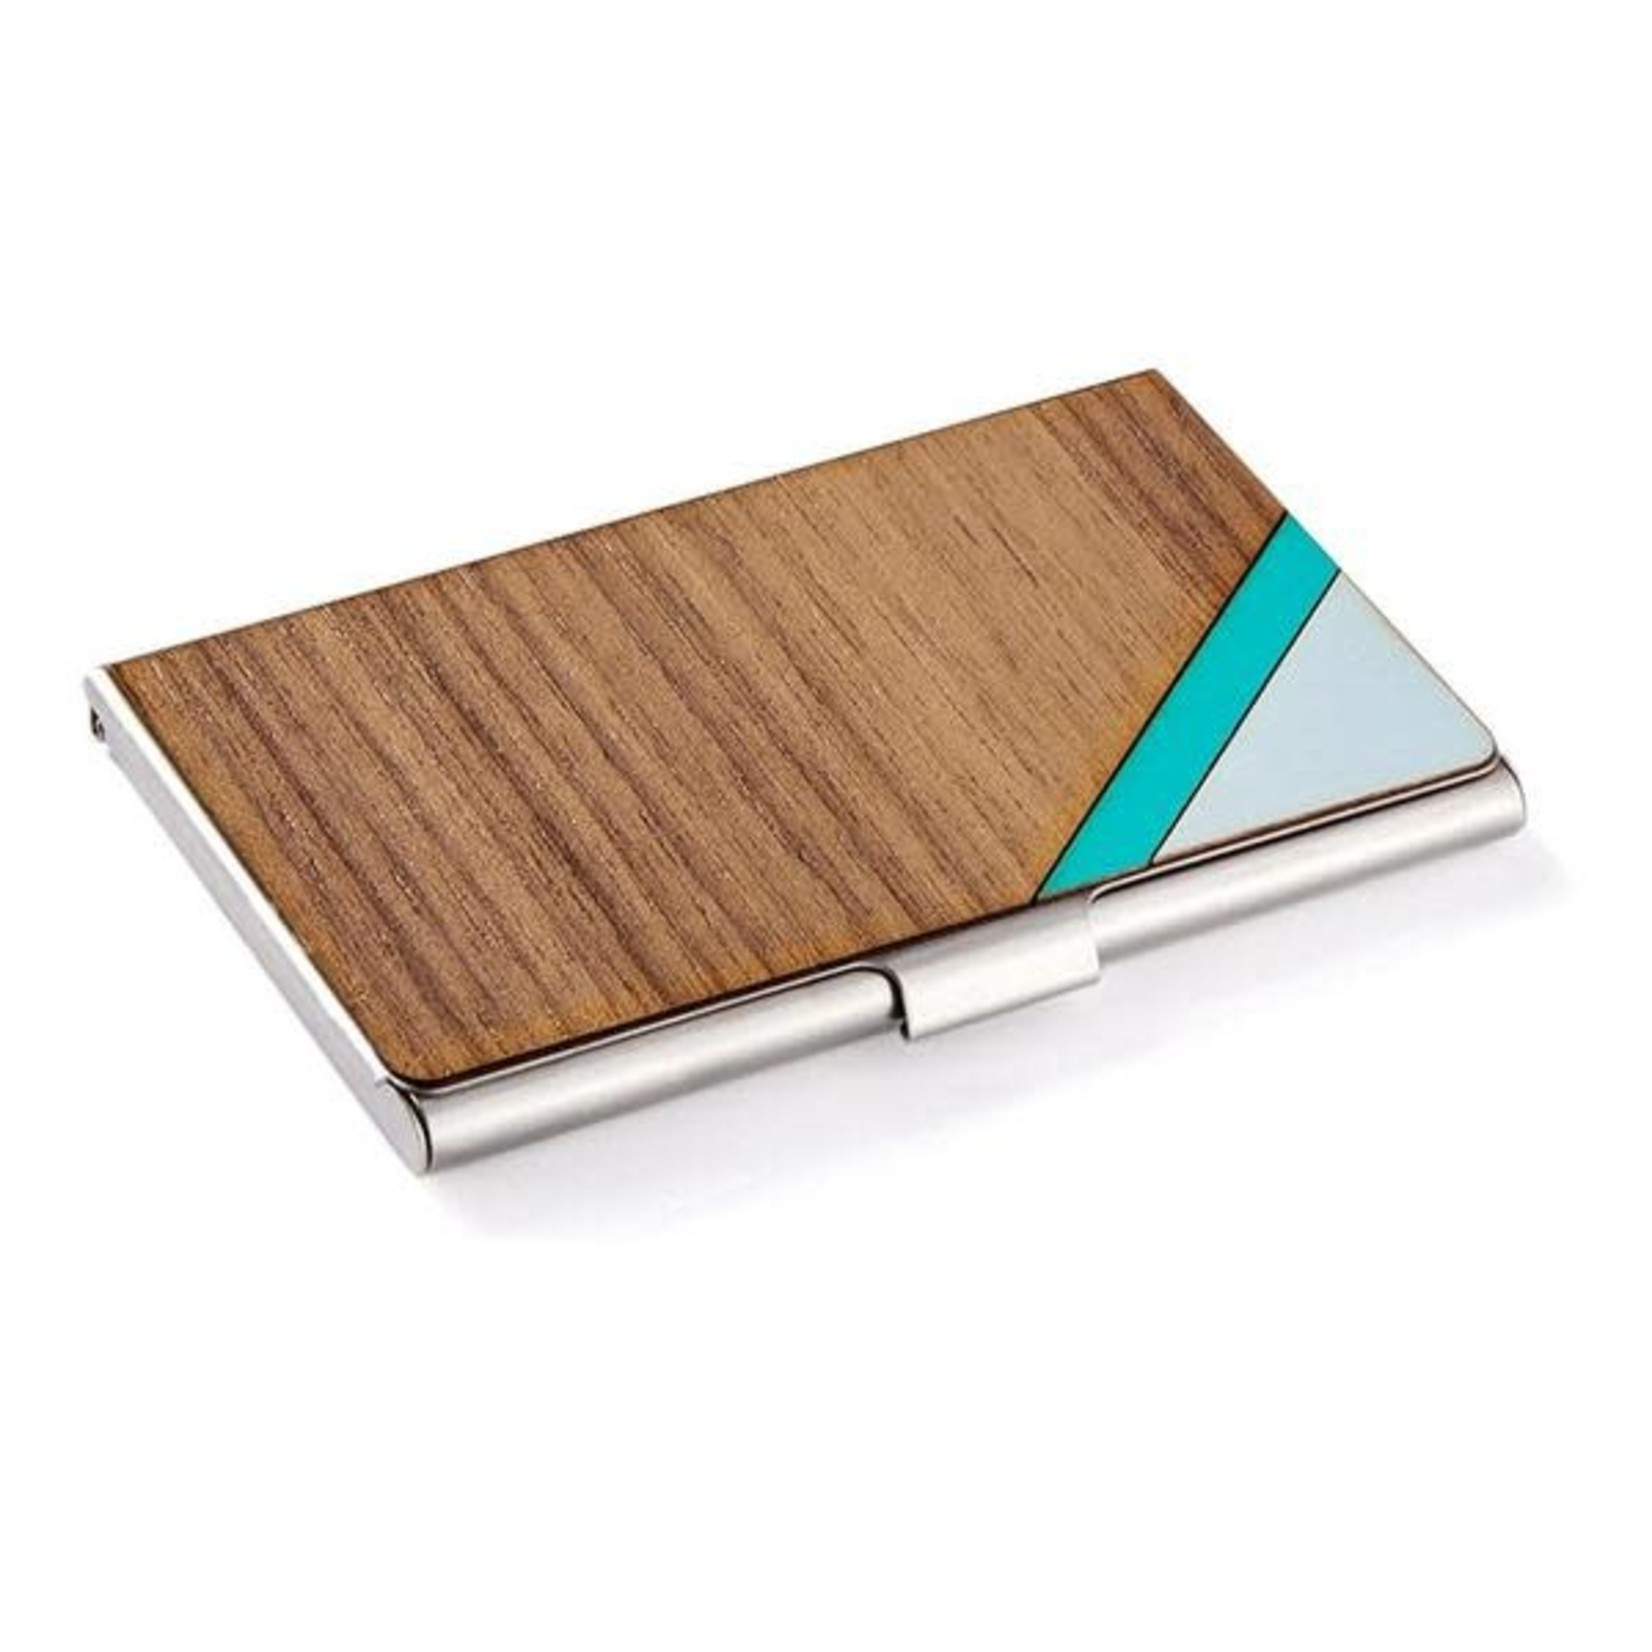 CARD CASE - STRIPE TEAL